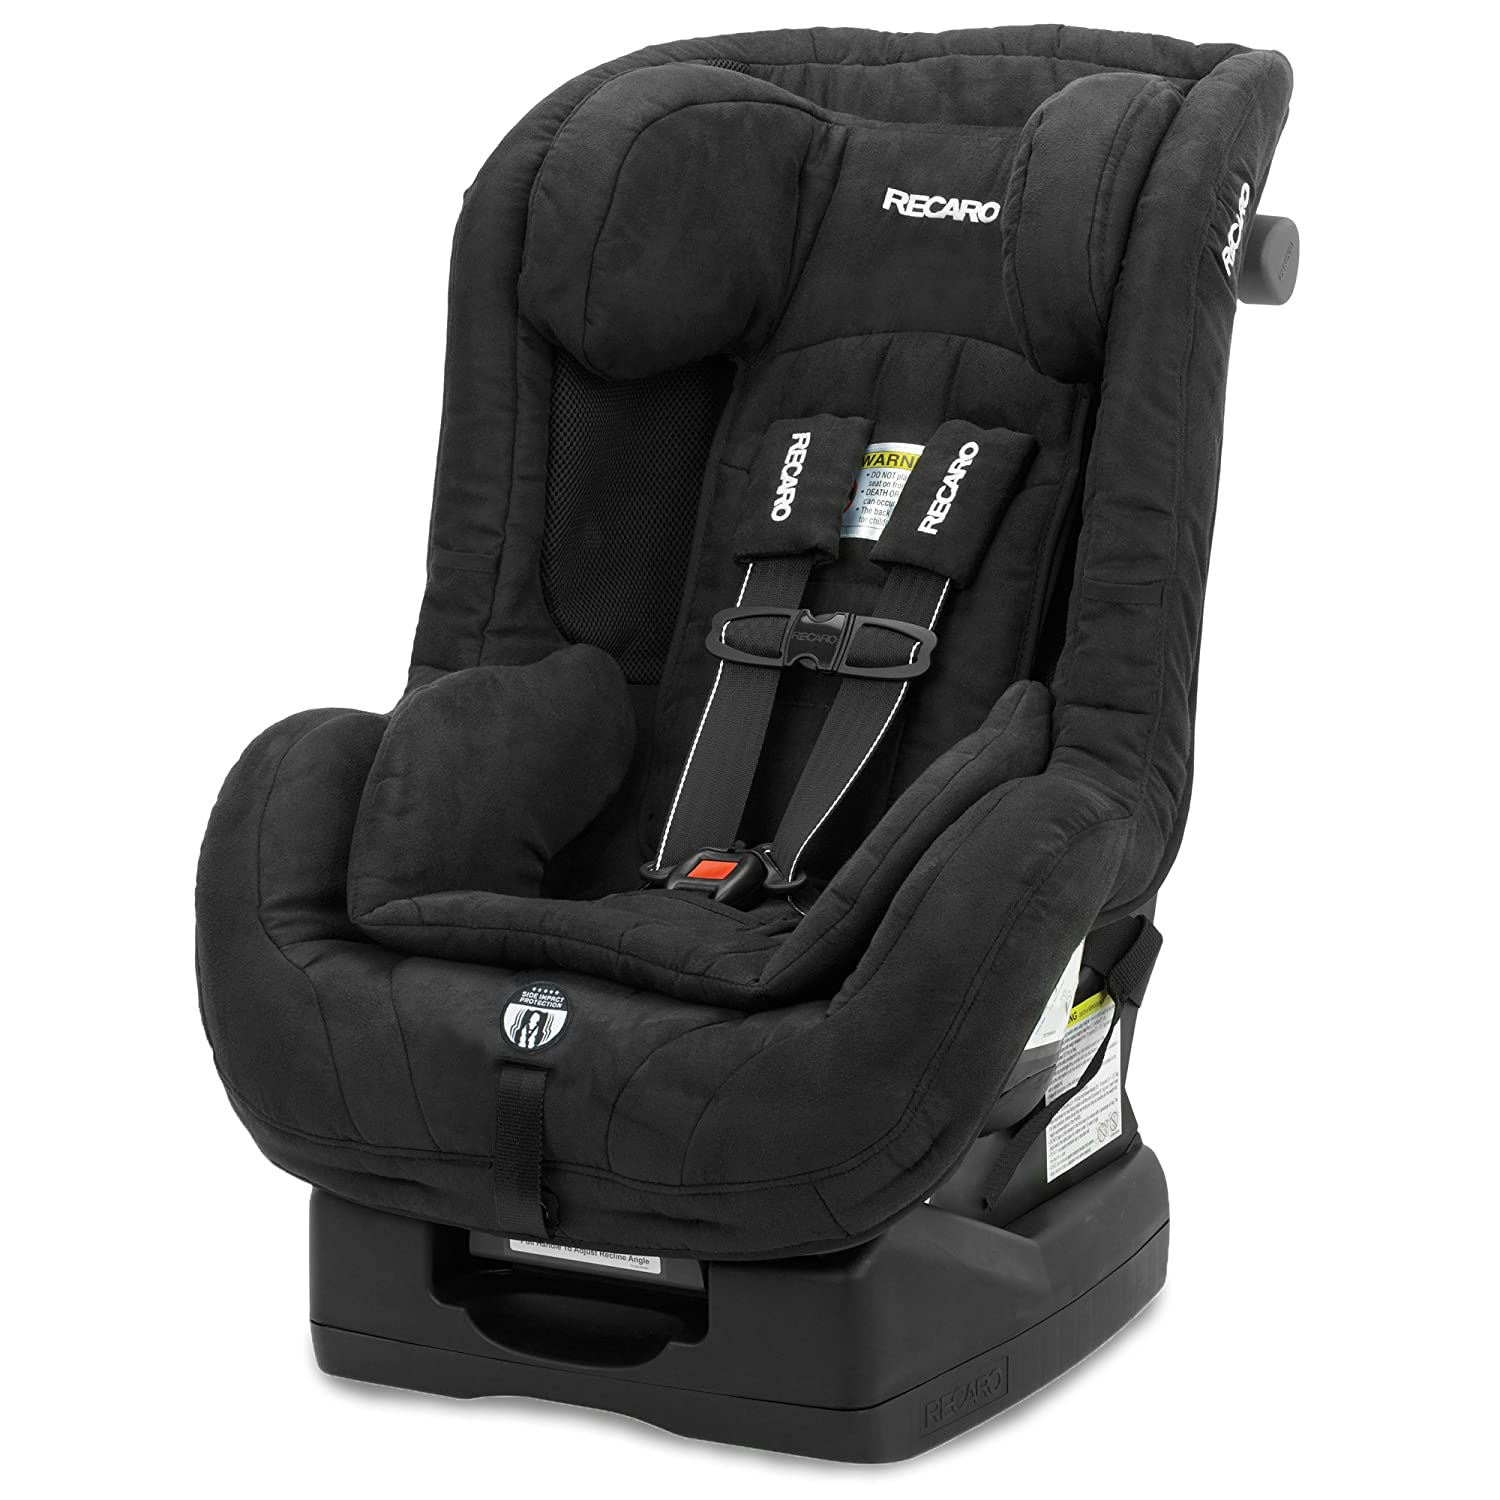 Amazon.com : RECARO ProRIDE Convertible Car